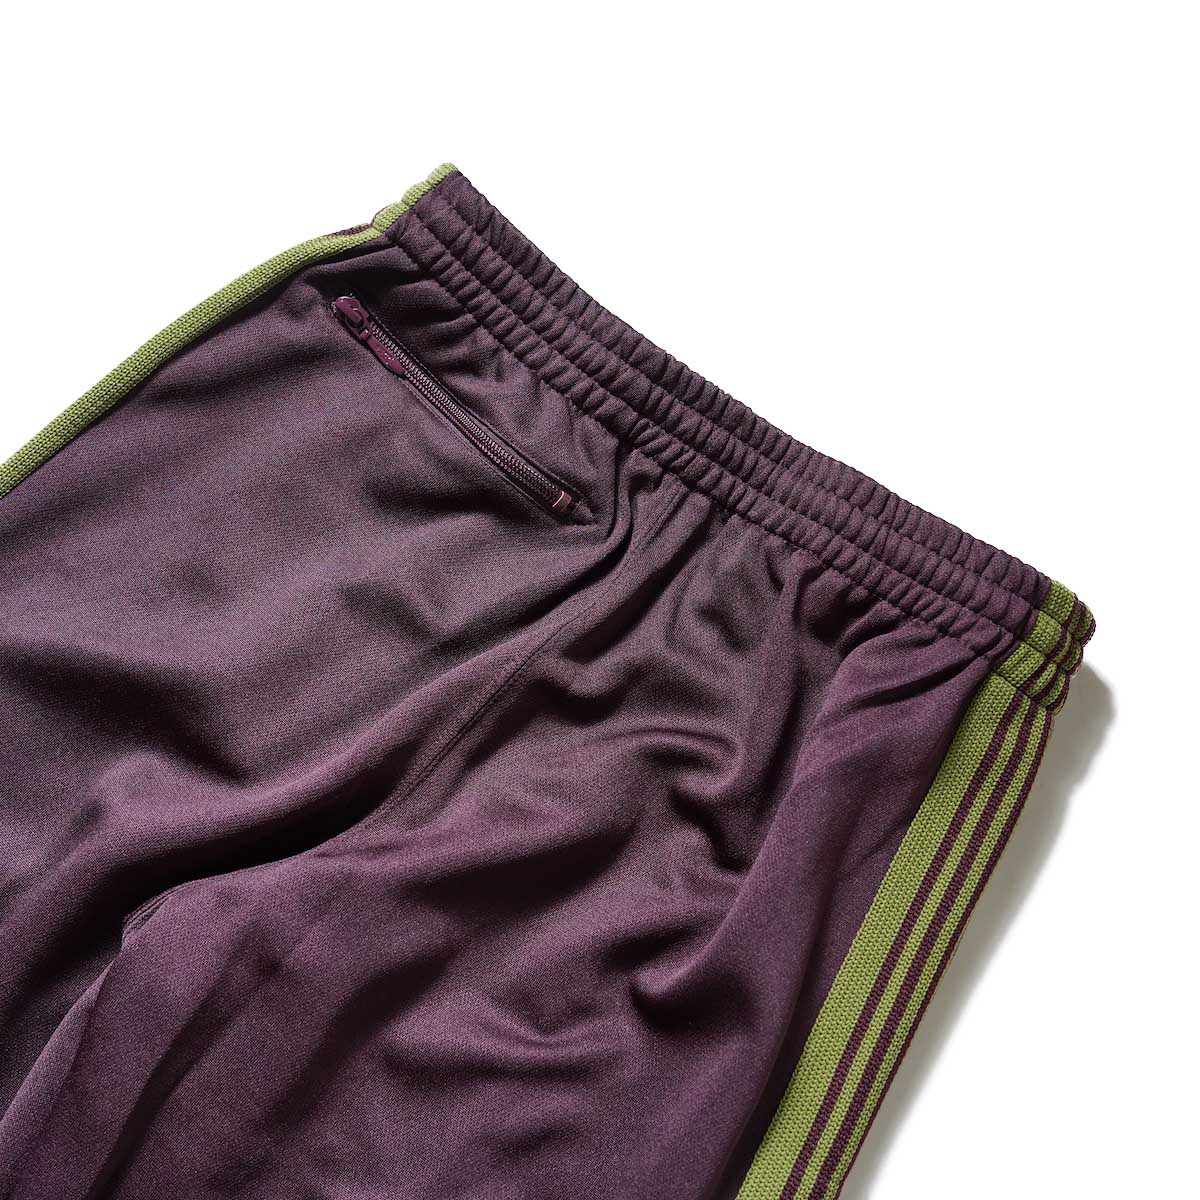 Needles / Boot-Cut Track Pant -Poly Smooth (Maroon)ヒップポケット